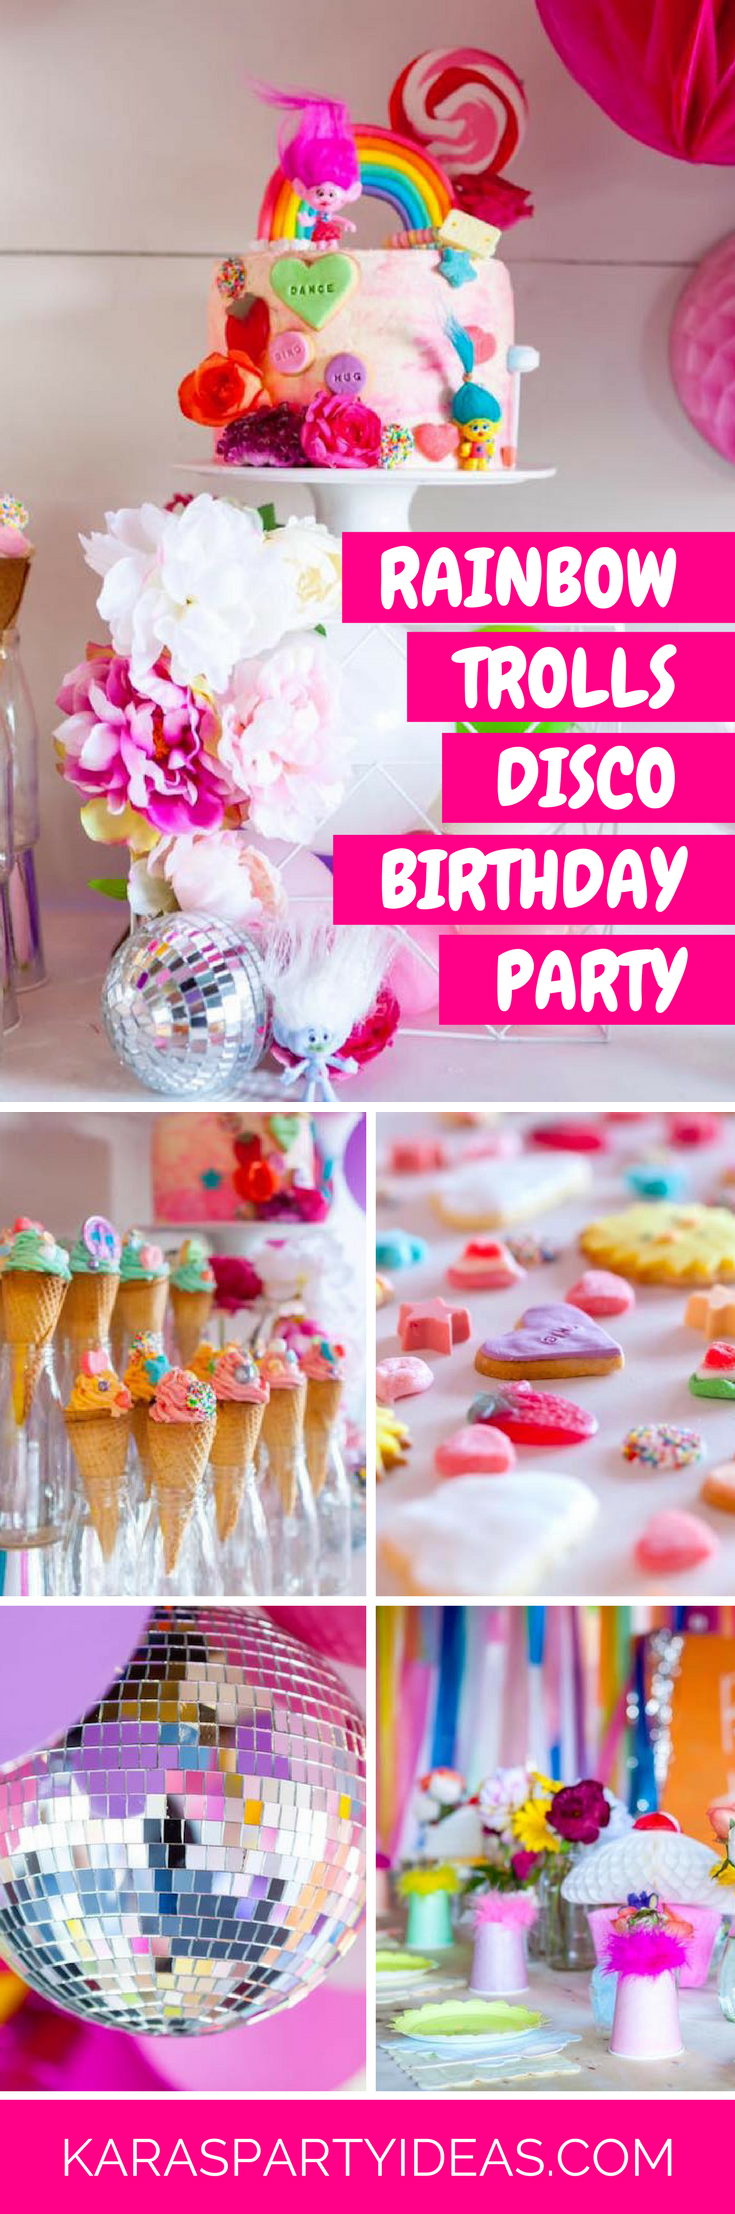 Rainbow Trolls Disco Birthday Party via Kara's Party Ideas - KarasPartyIdeas.com